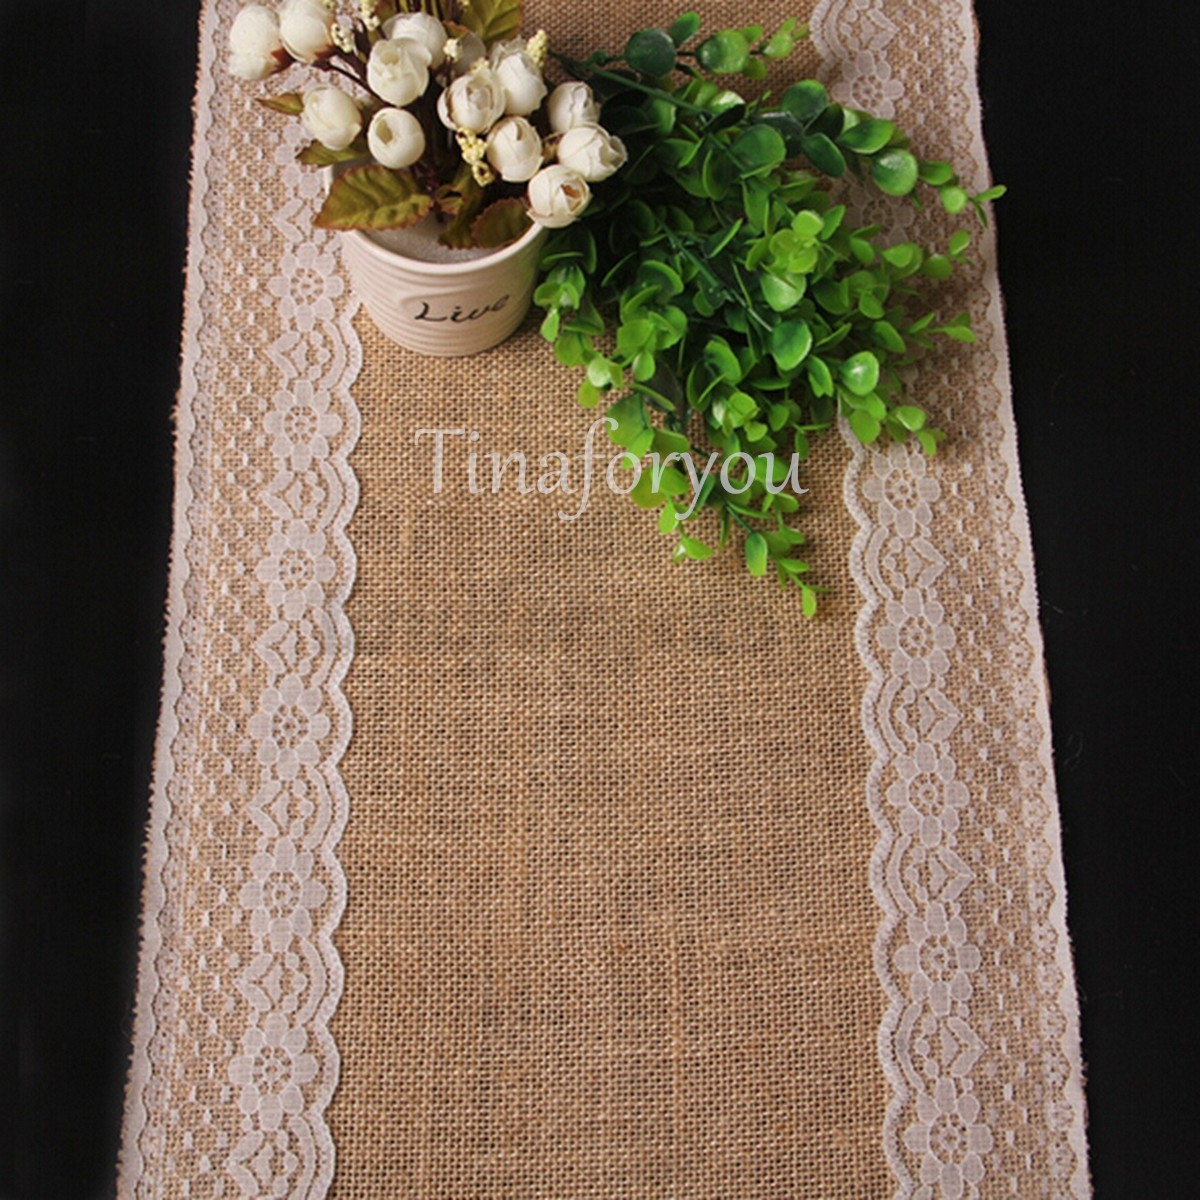 245cm nappe en toile de jute dentelle chemin de table mariage no l neu ebay. Black Bedroom Furniture Sets. Home Design Ideas